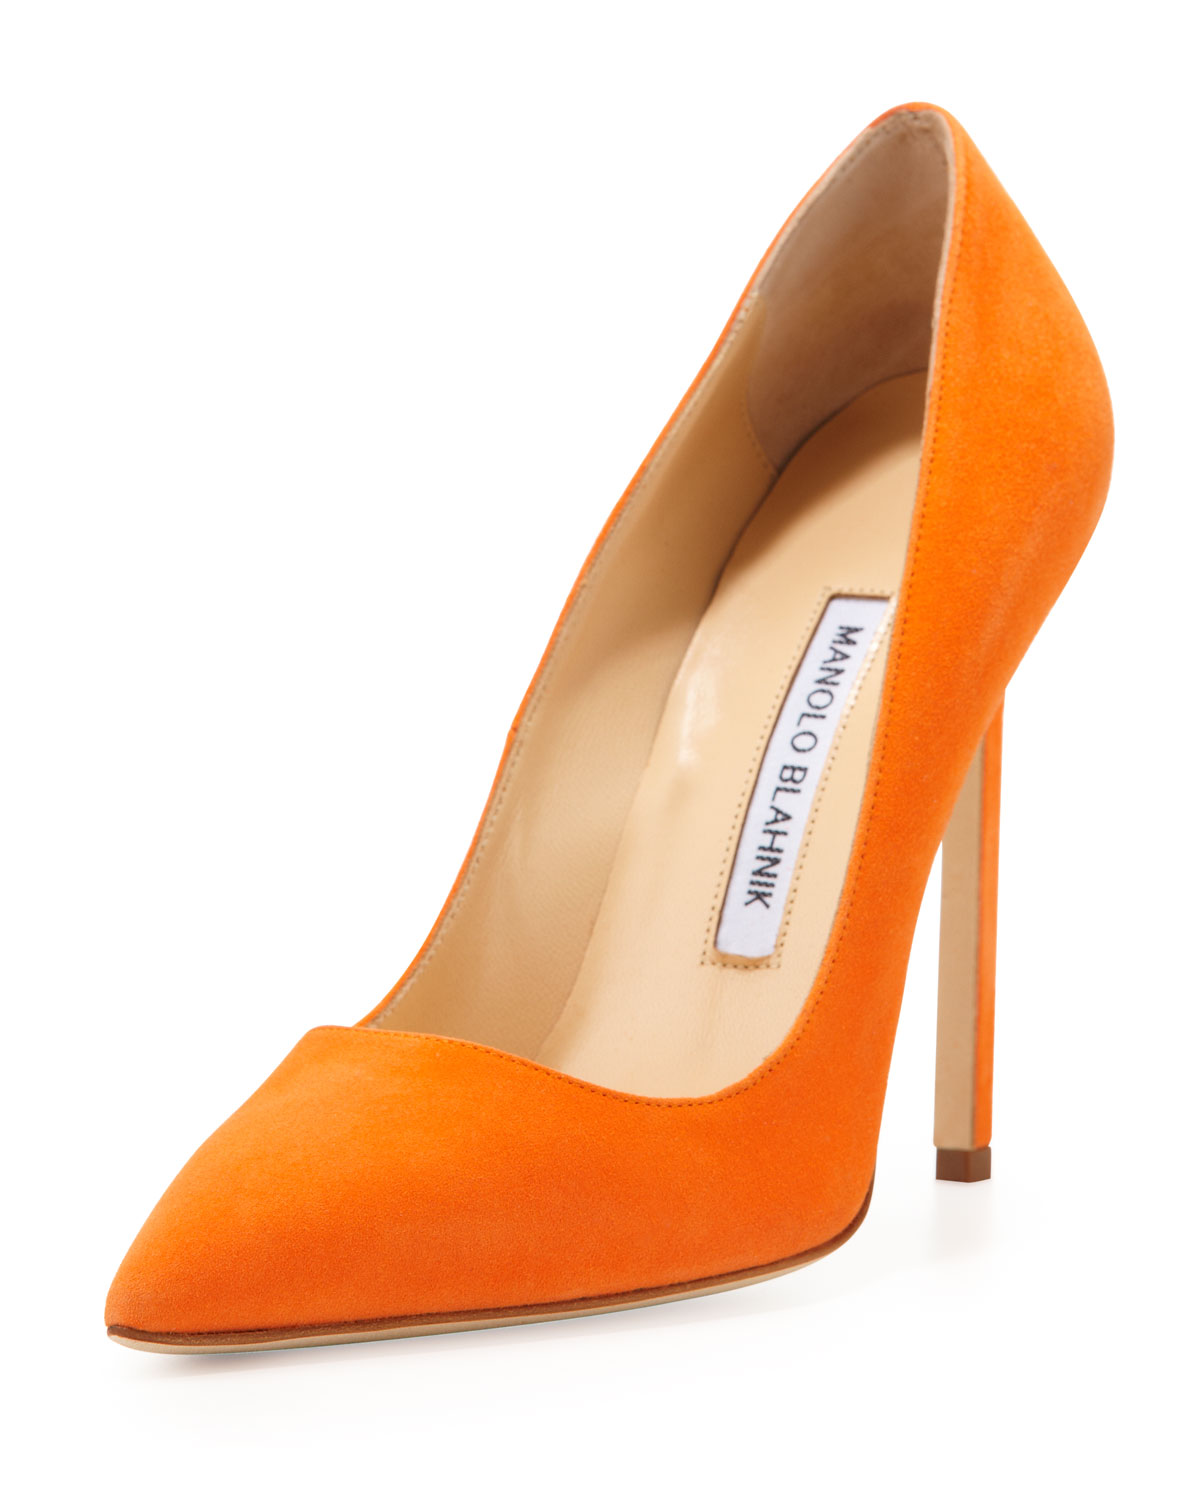 Manolo blahnik bb suede 115mm pump orange made to order in for Who is manolo blahnik